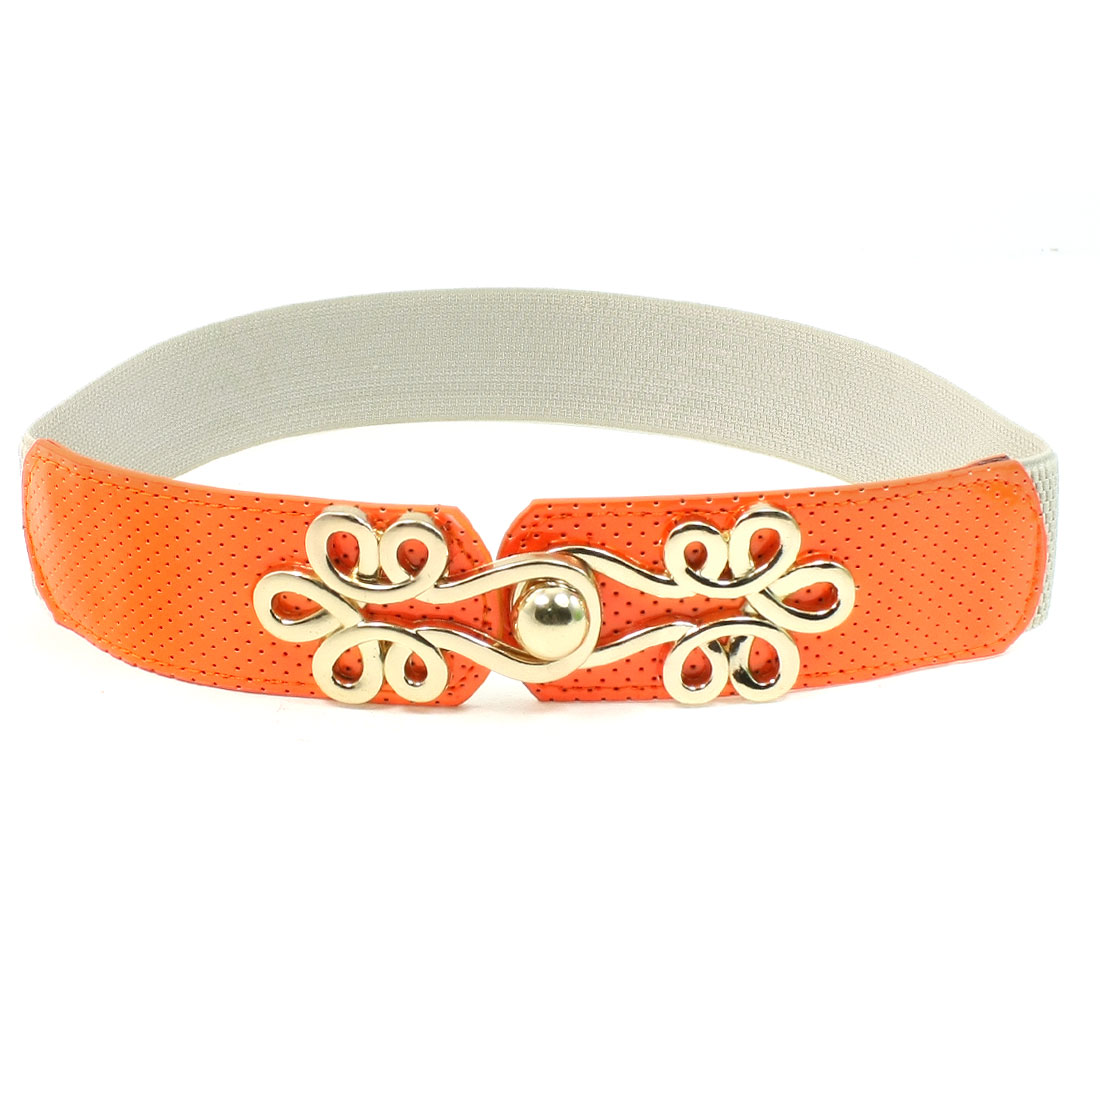 Floral Shape Buckle Faux Leather Elastic Textured Cinch Band Orange for Ladies